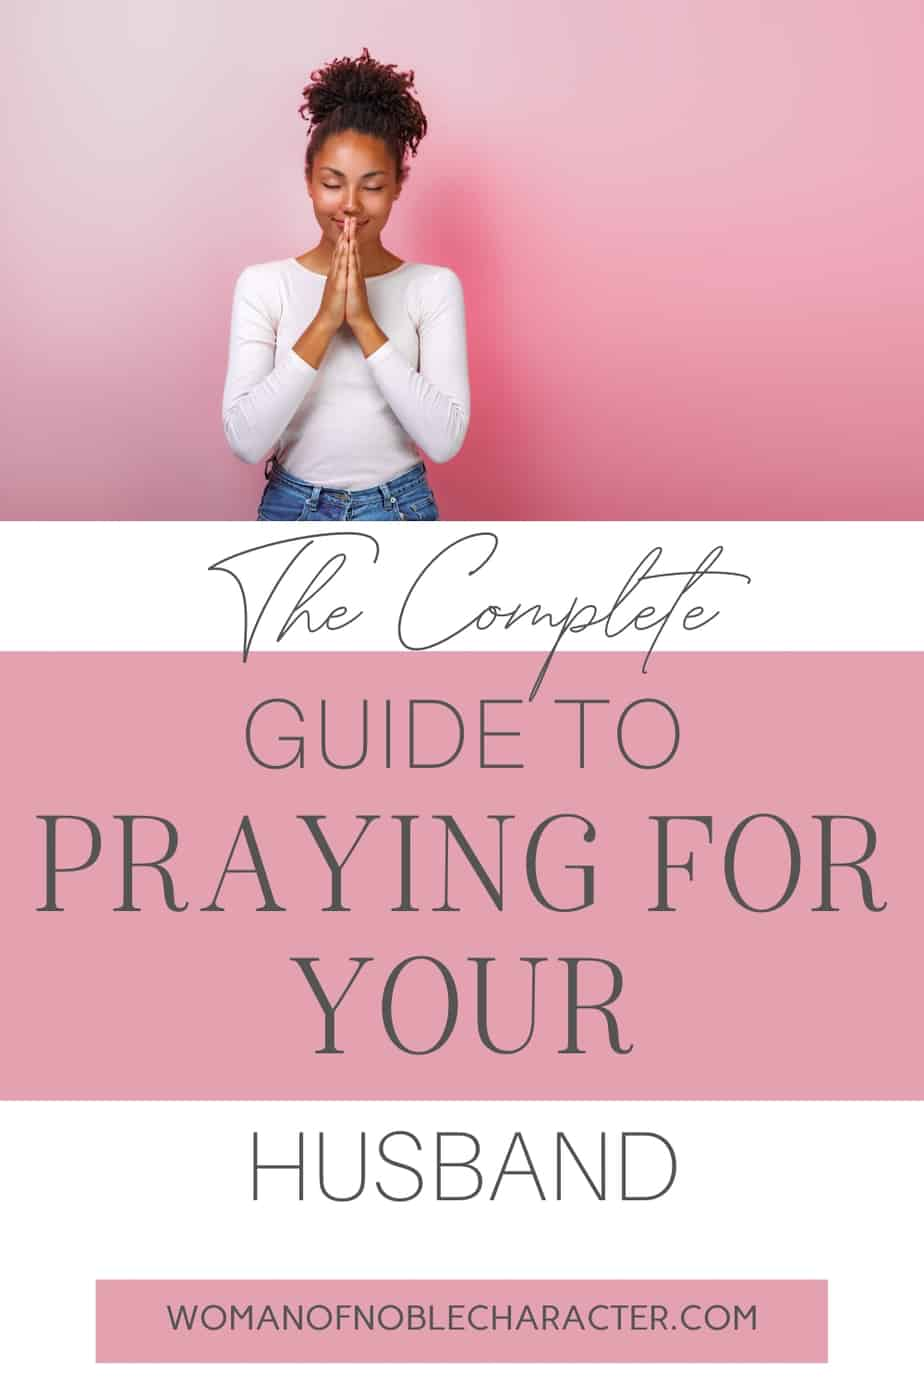 An image of an African American woman in a white shirt and her hands in front of her in prayer against a pretty pink background and text that says The Complete Guide to Praying for Your Husband